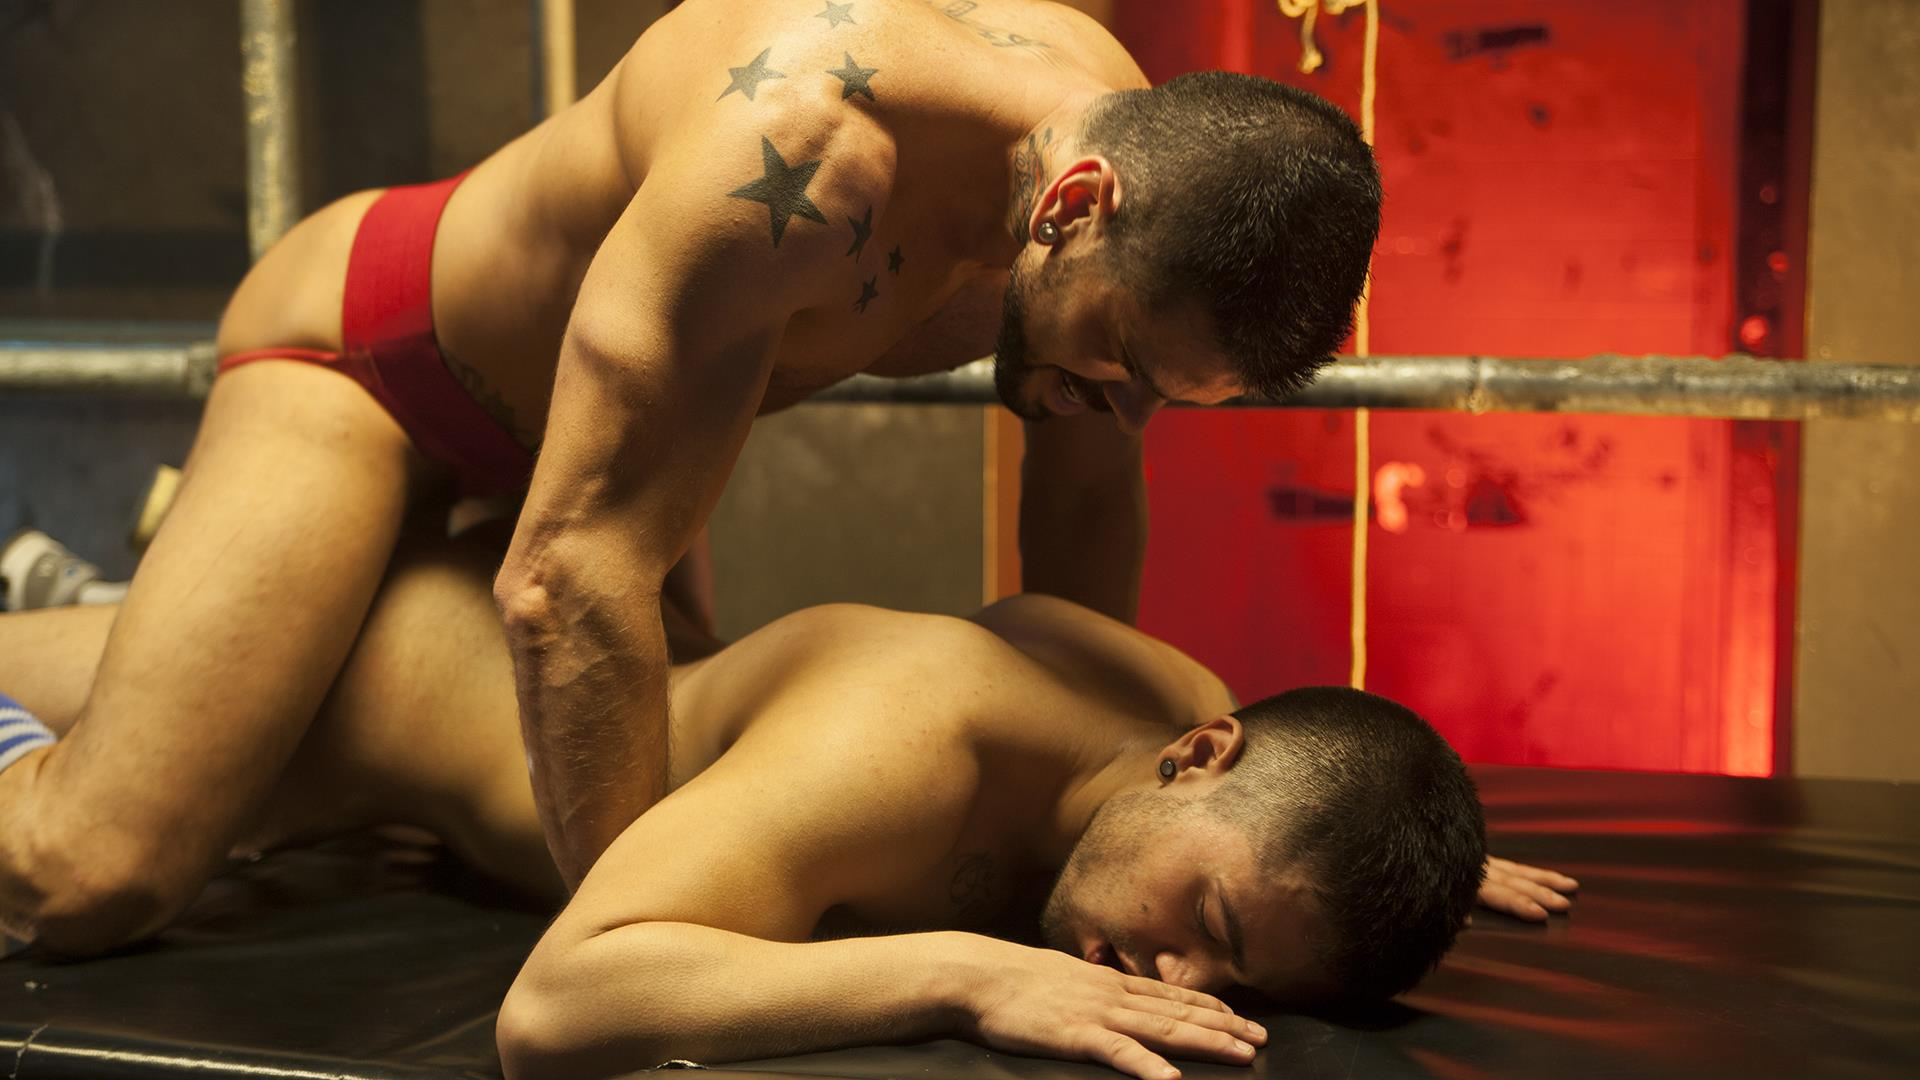 Dark Alley XT Mario Domenech and Antonio Miracle Jocks Bareback Bathhouse Sex Amateur Gay Porn 14 Muscle Jocks Bareback Fucking At A Bathhouse With Their Big Uncut Cocks